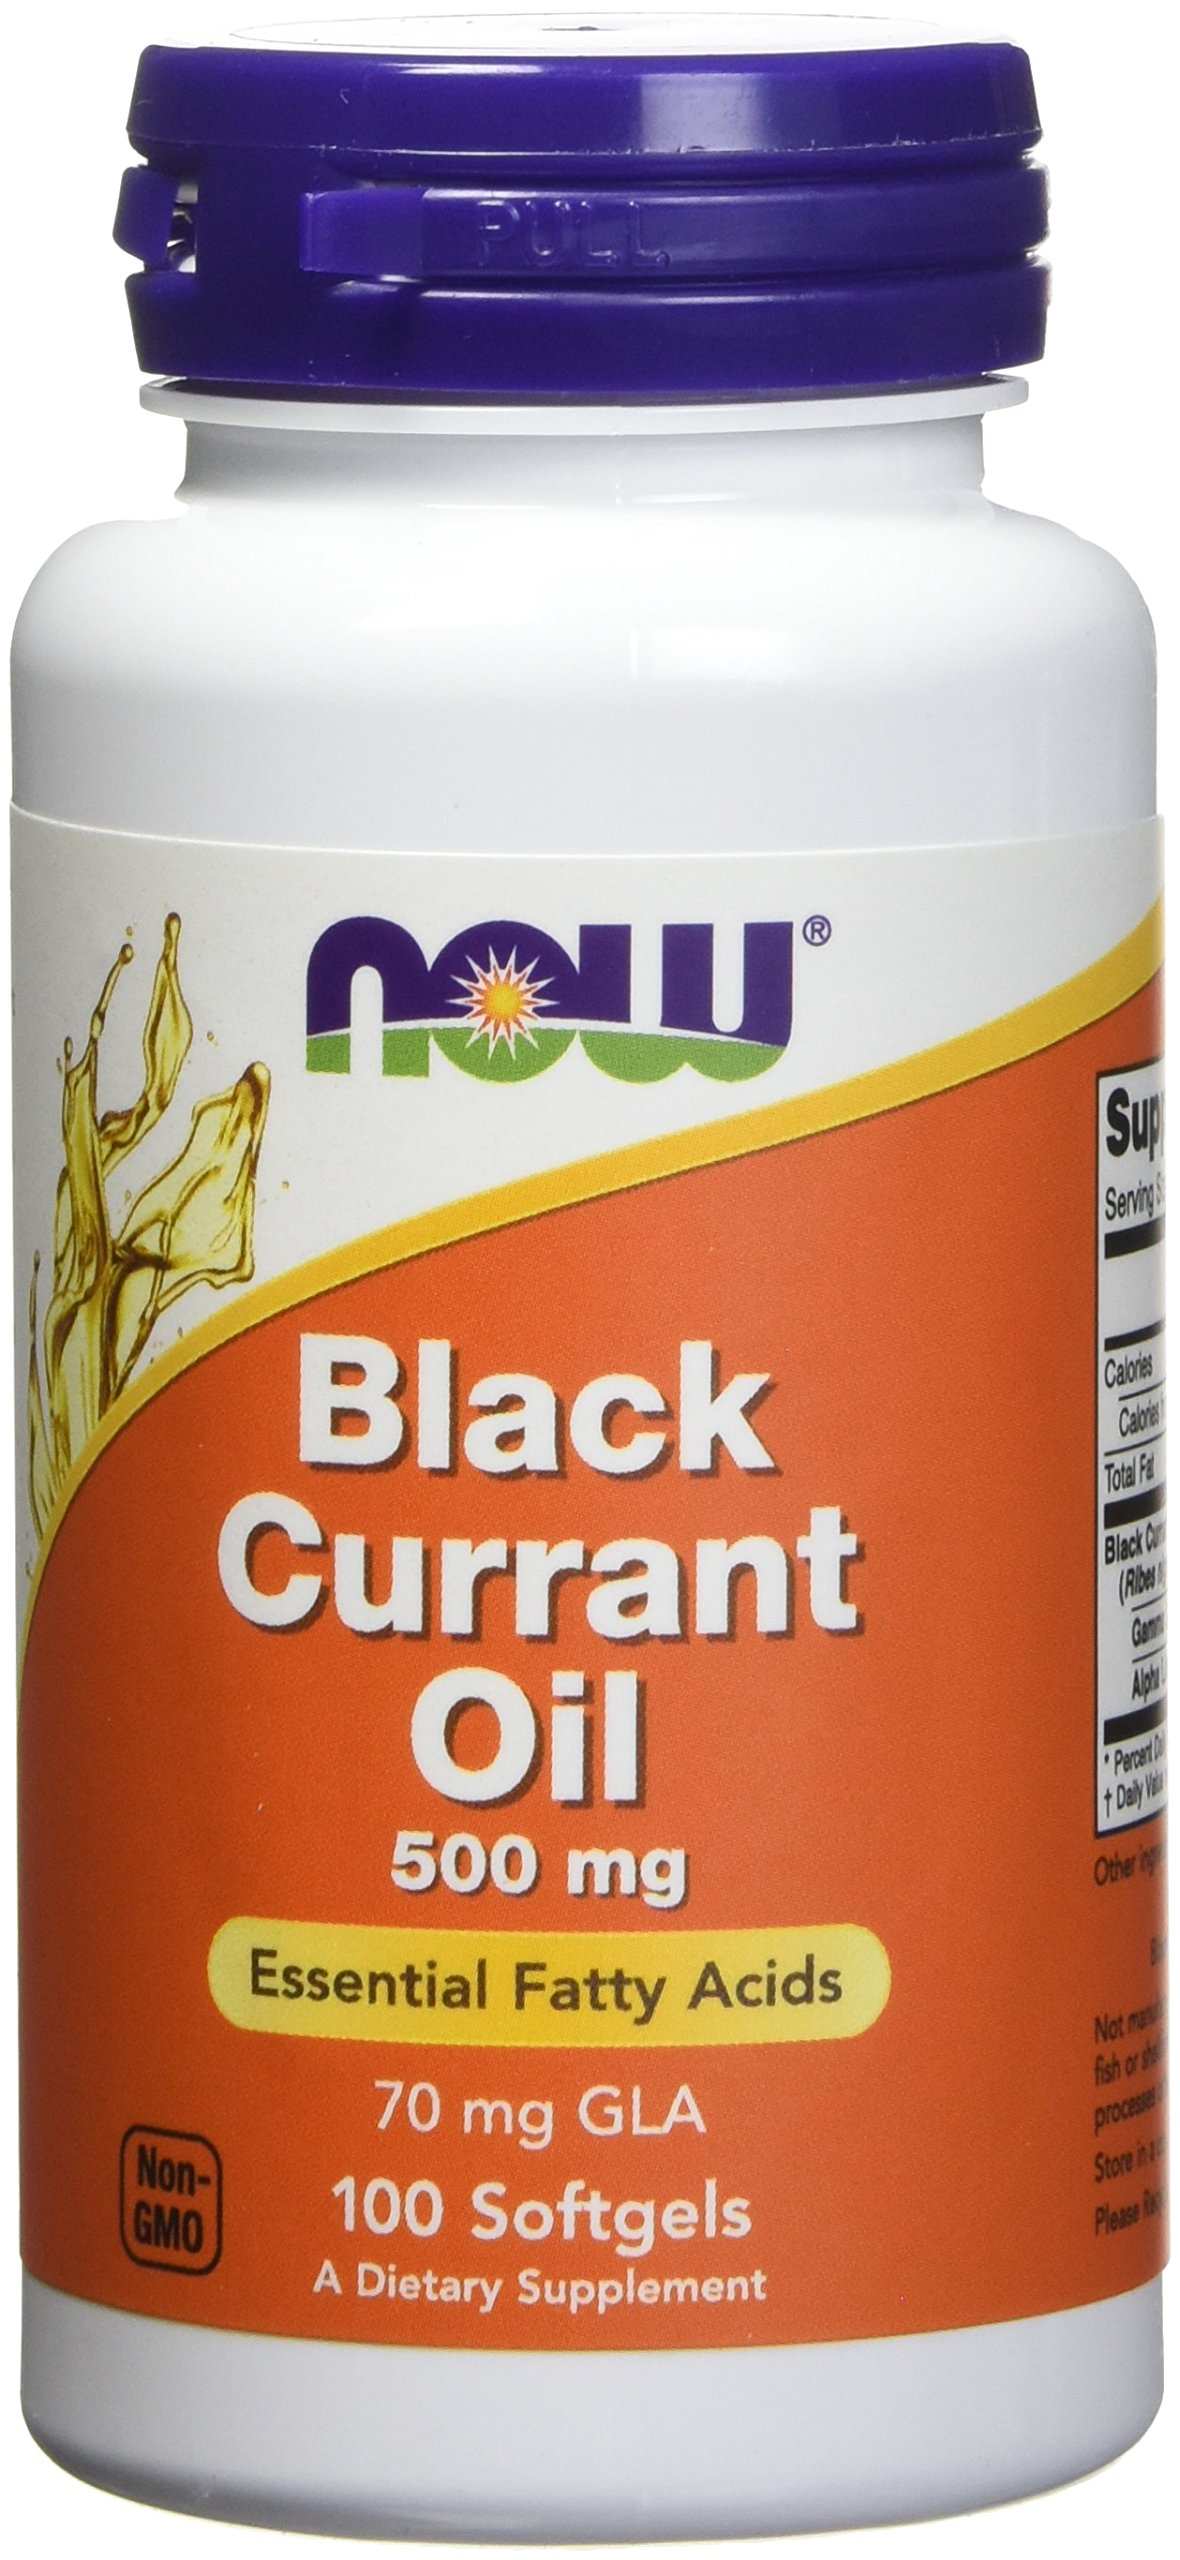 Now Foods Black Currant Oil 500 milligrams - 100 softgels (Pack of 2) by NOW Foods